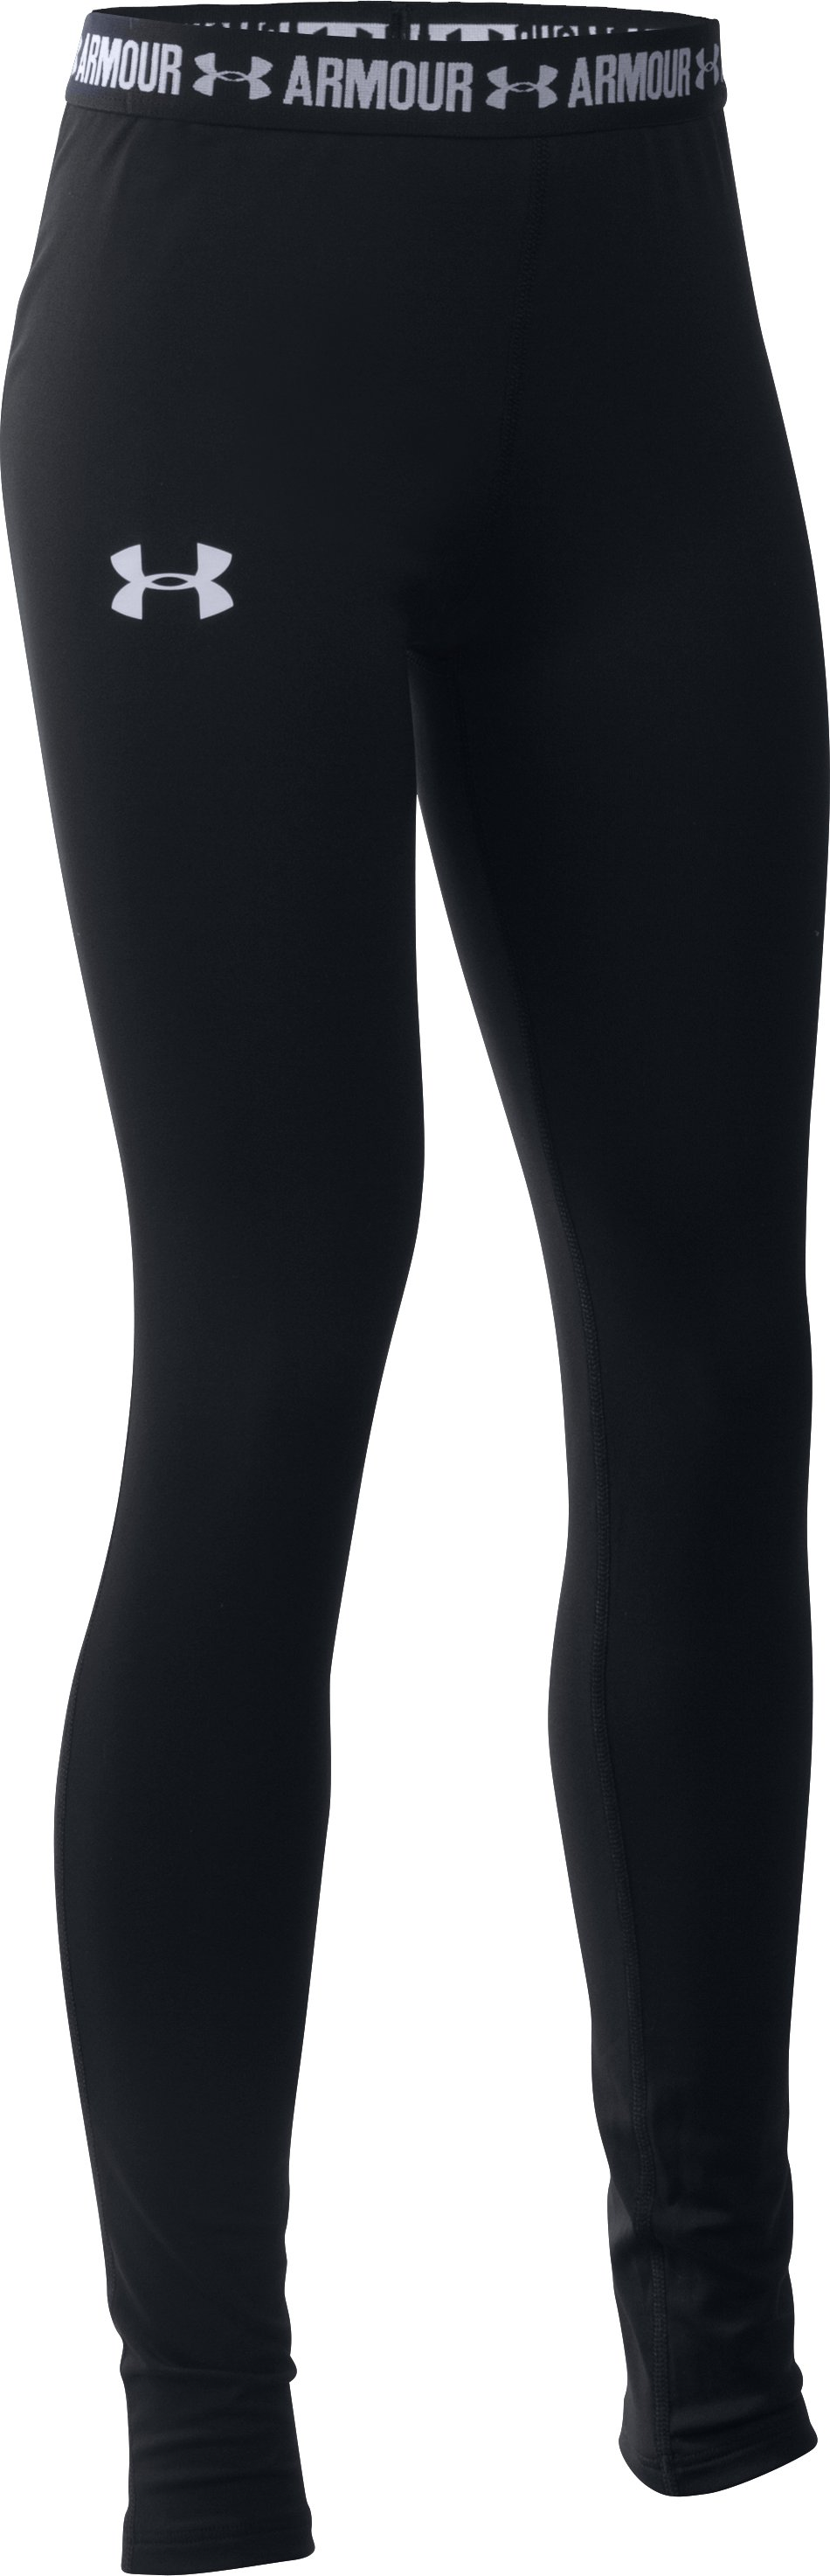 Girls' HeatGear® Armour Legging, Black , zoomed image